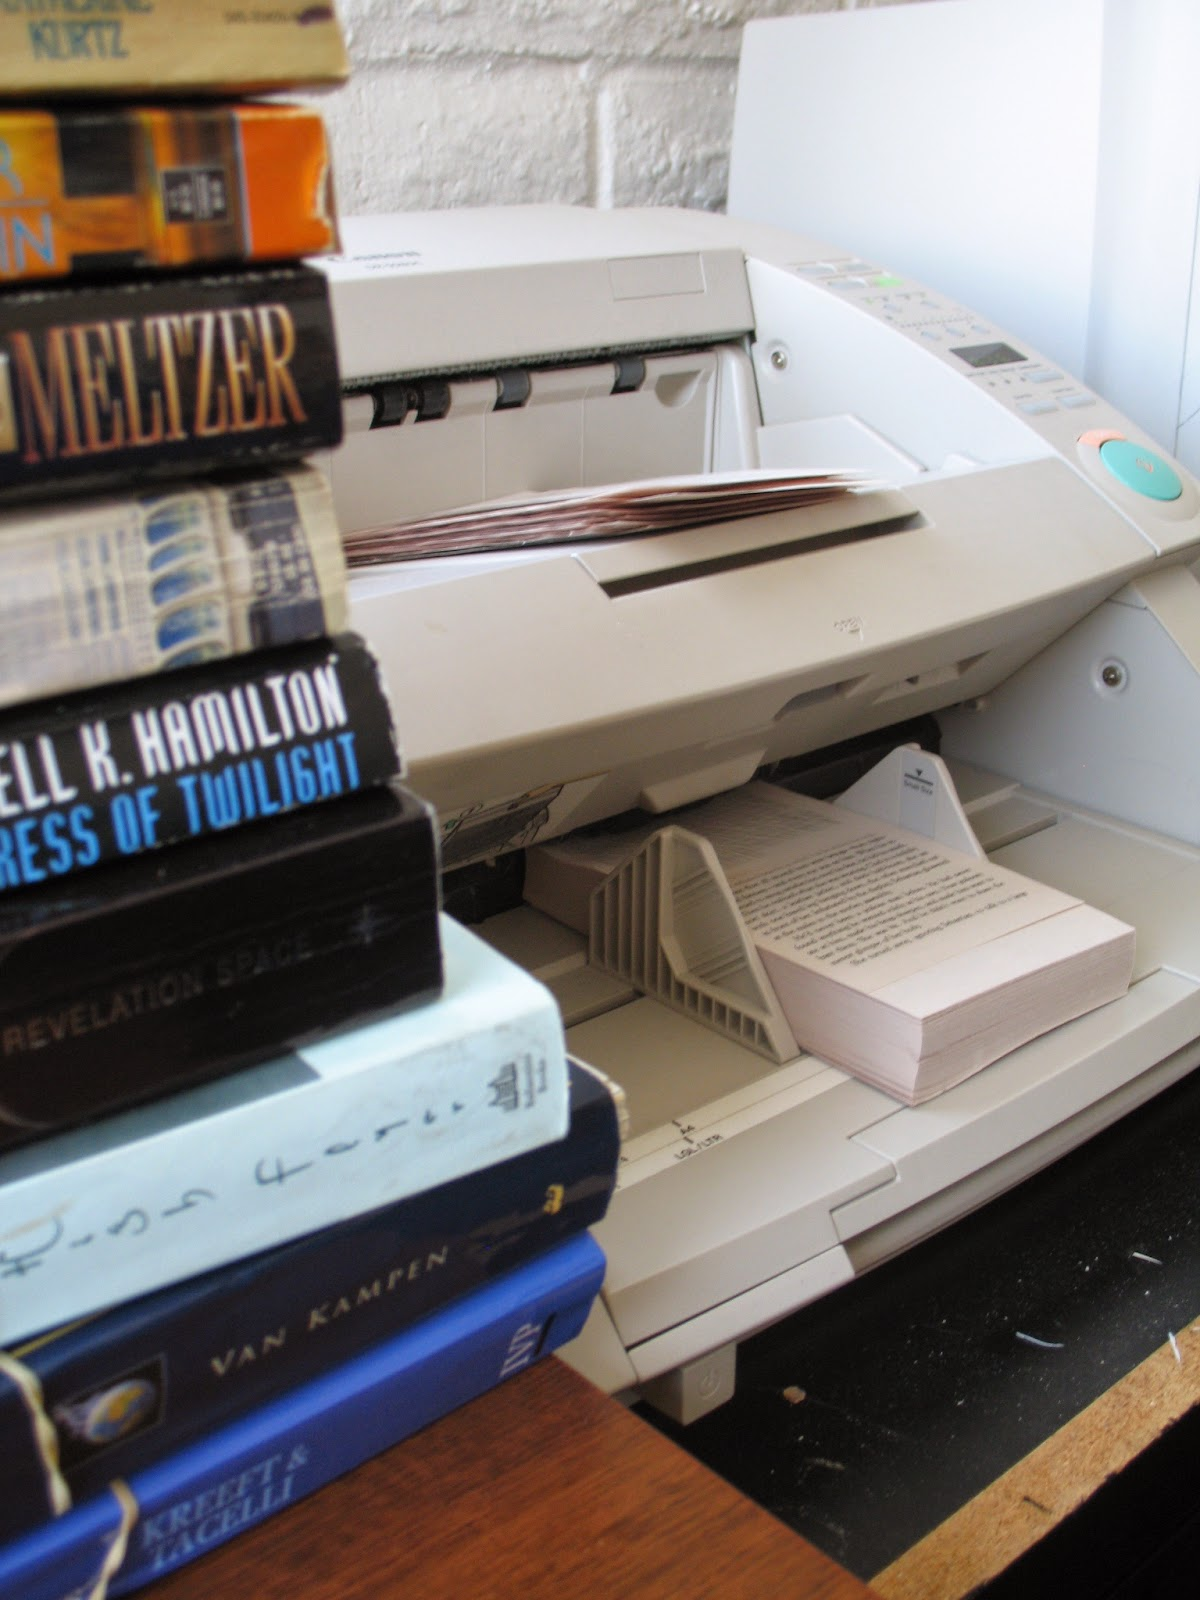 A pile of unbound books on a desk, adjacent to a scanner, with a chopped book being scanned.